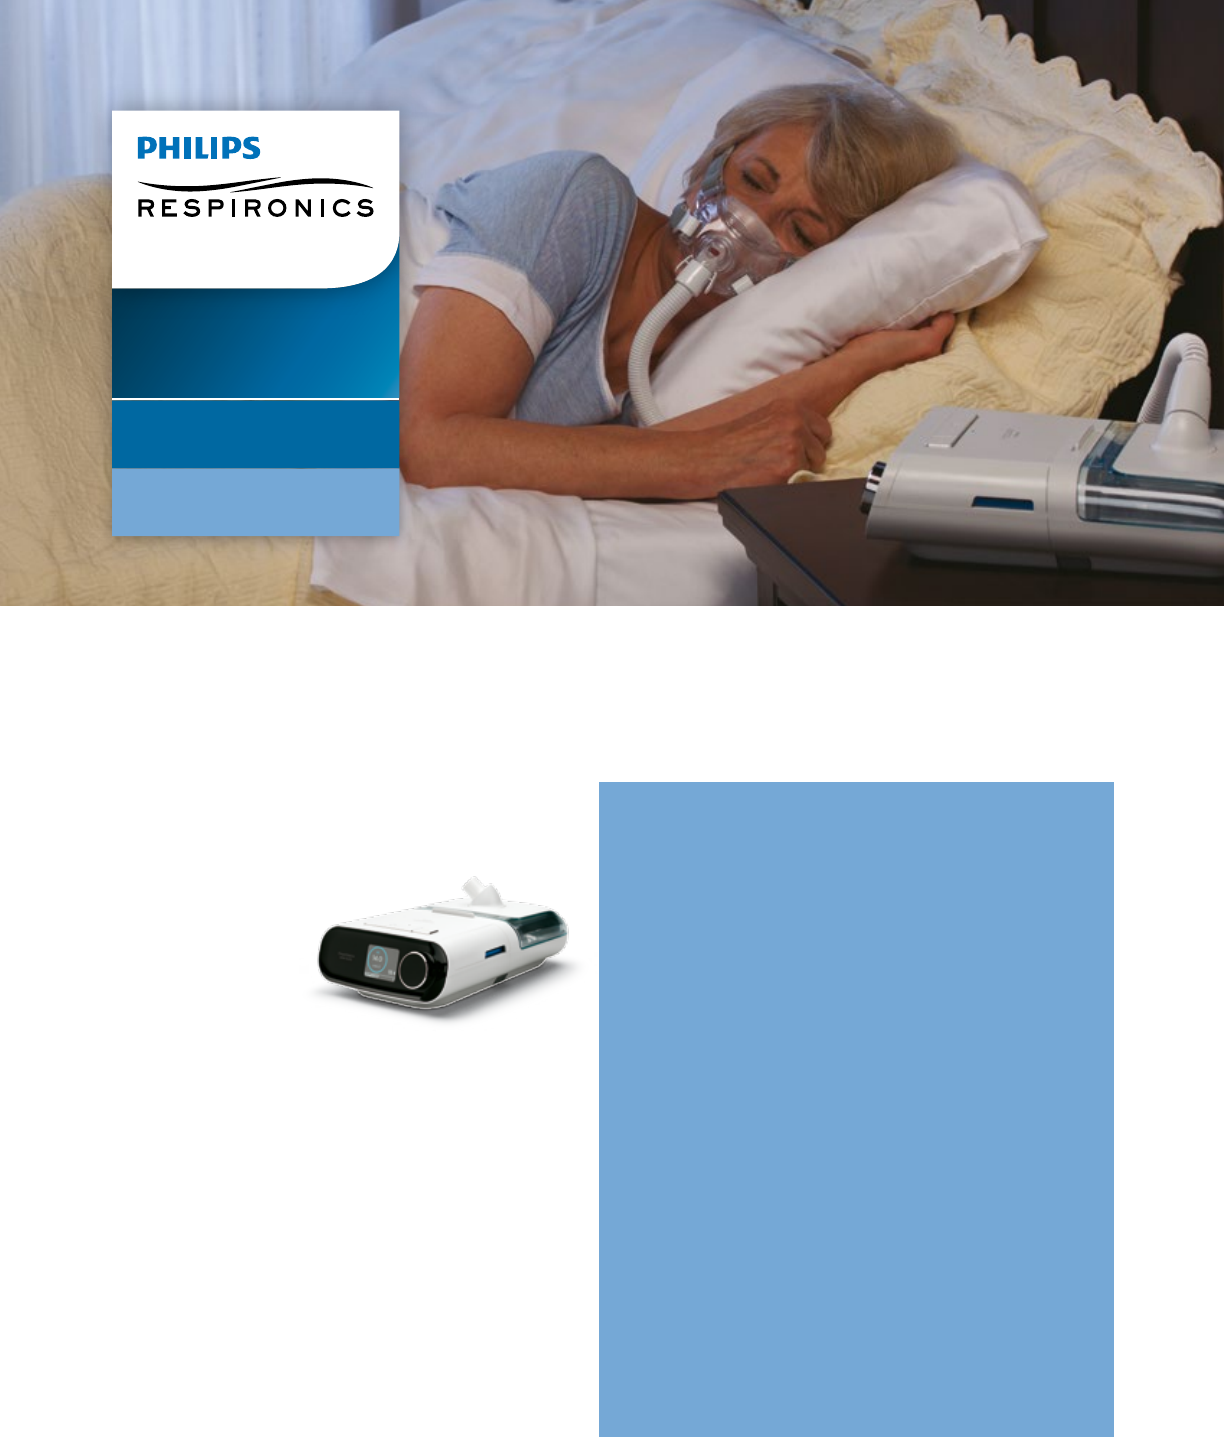 Philips INX1130T19 Object Moved User Manual Product Brochure